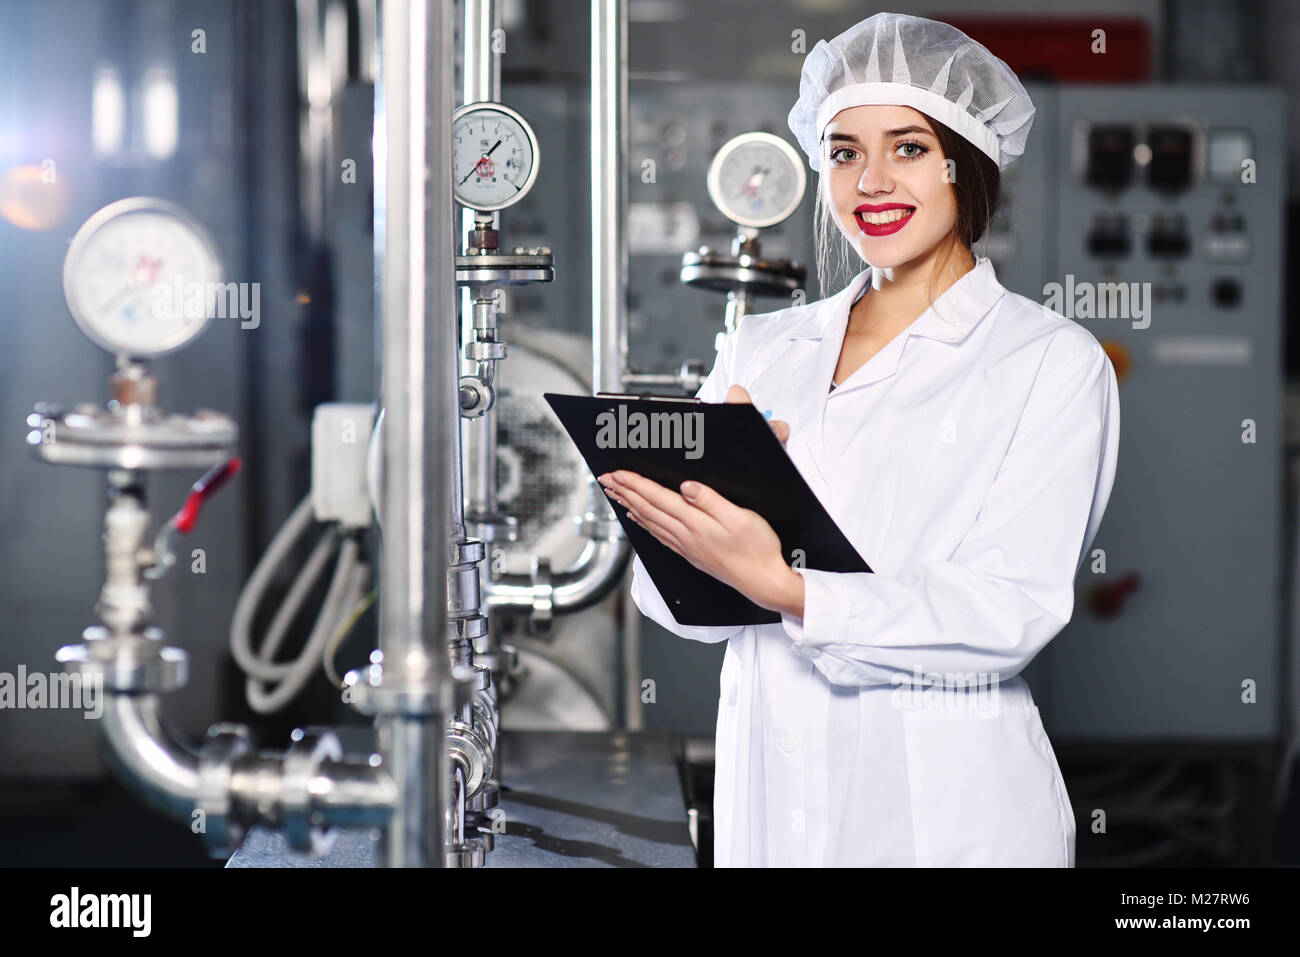 cute girl in white working clothes makes notes on a pen on a tablet on a production background. - Stock Image